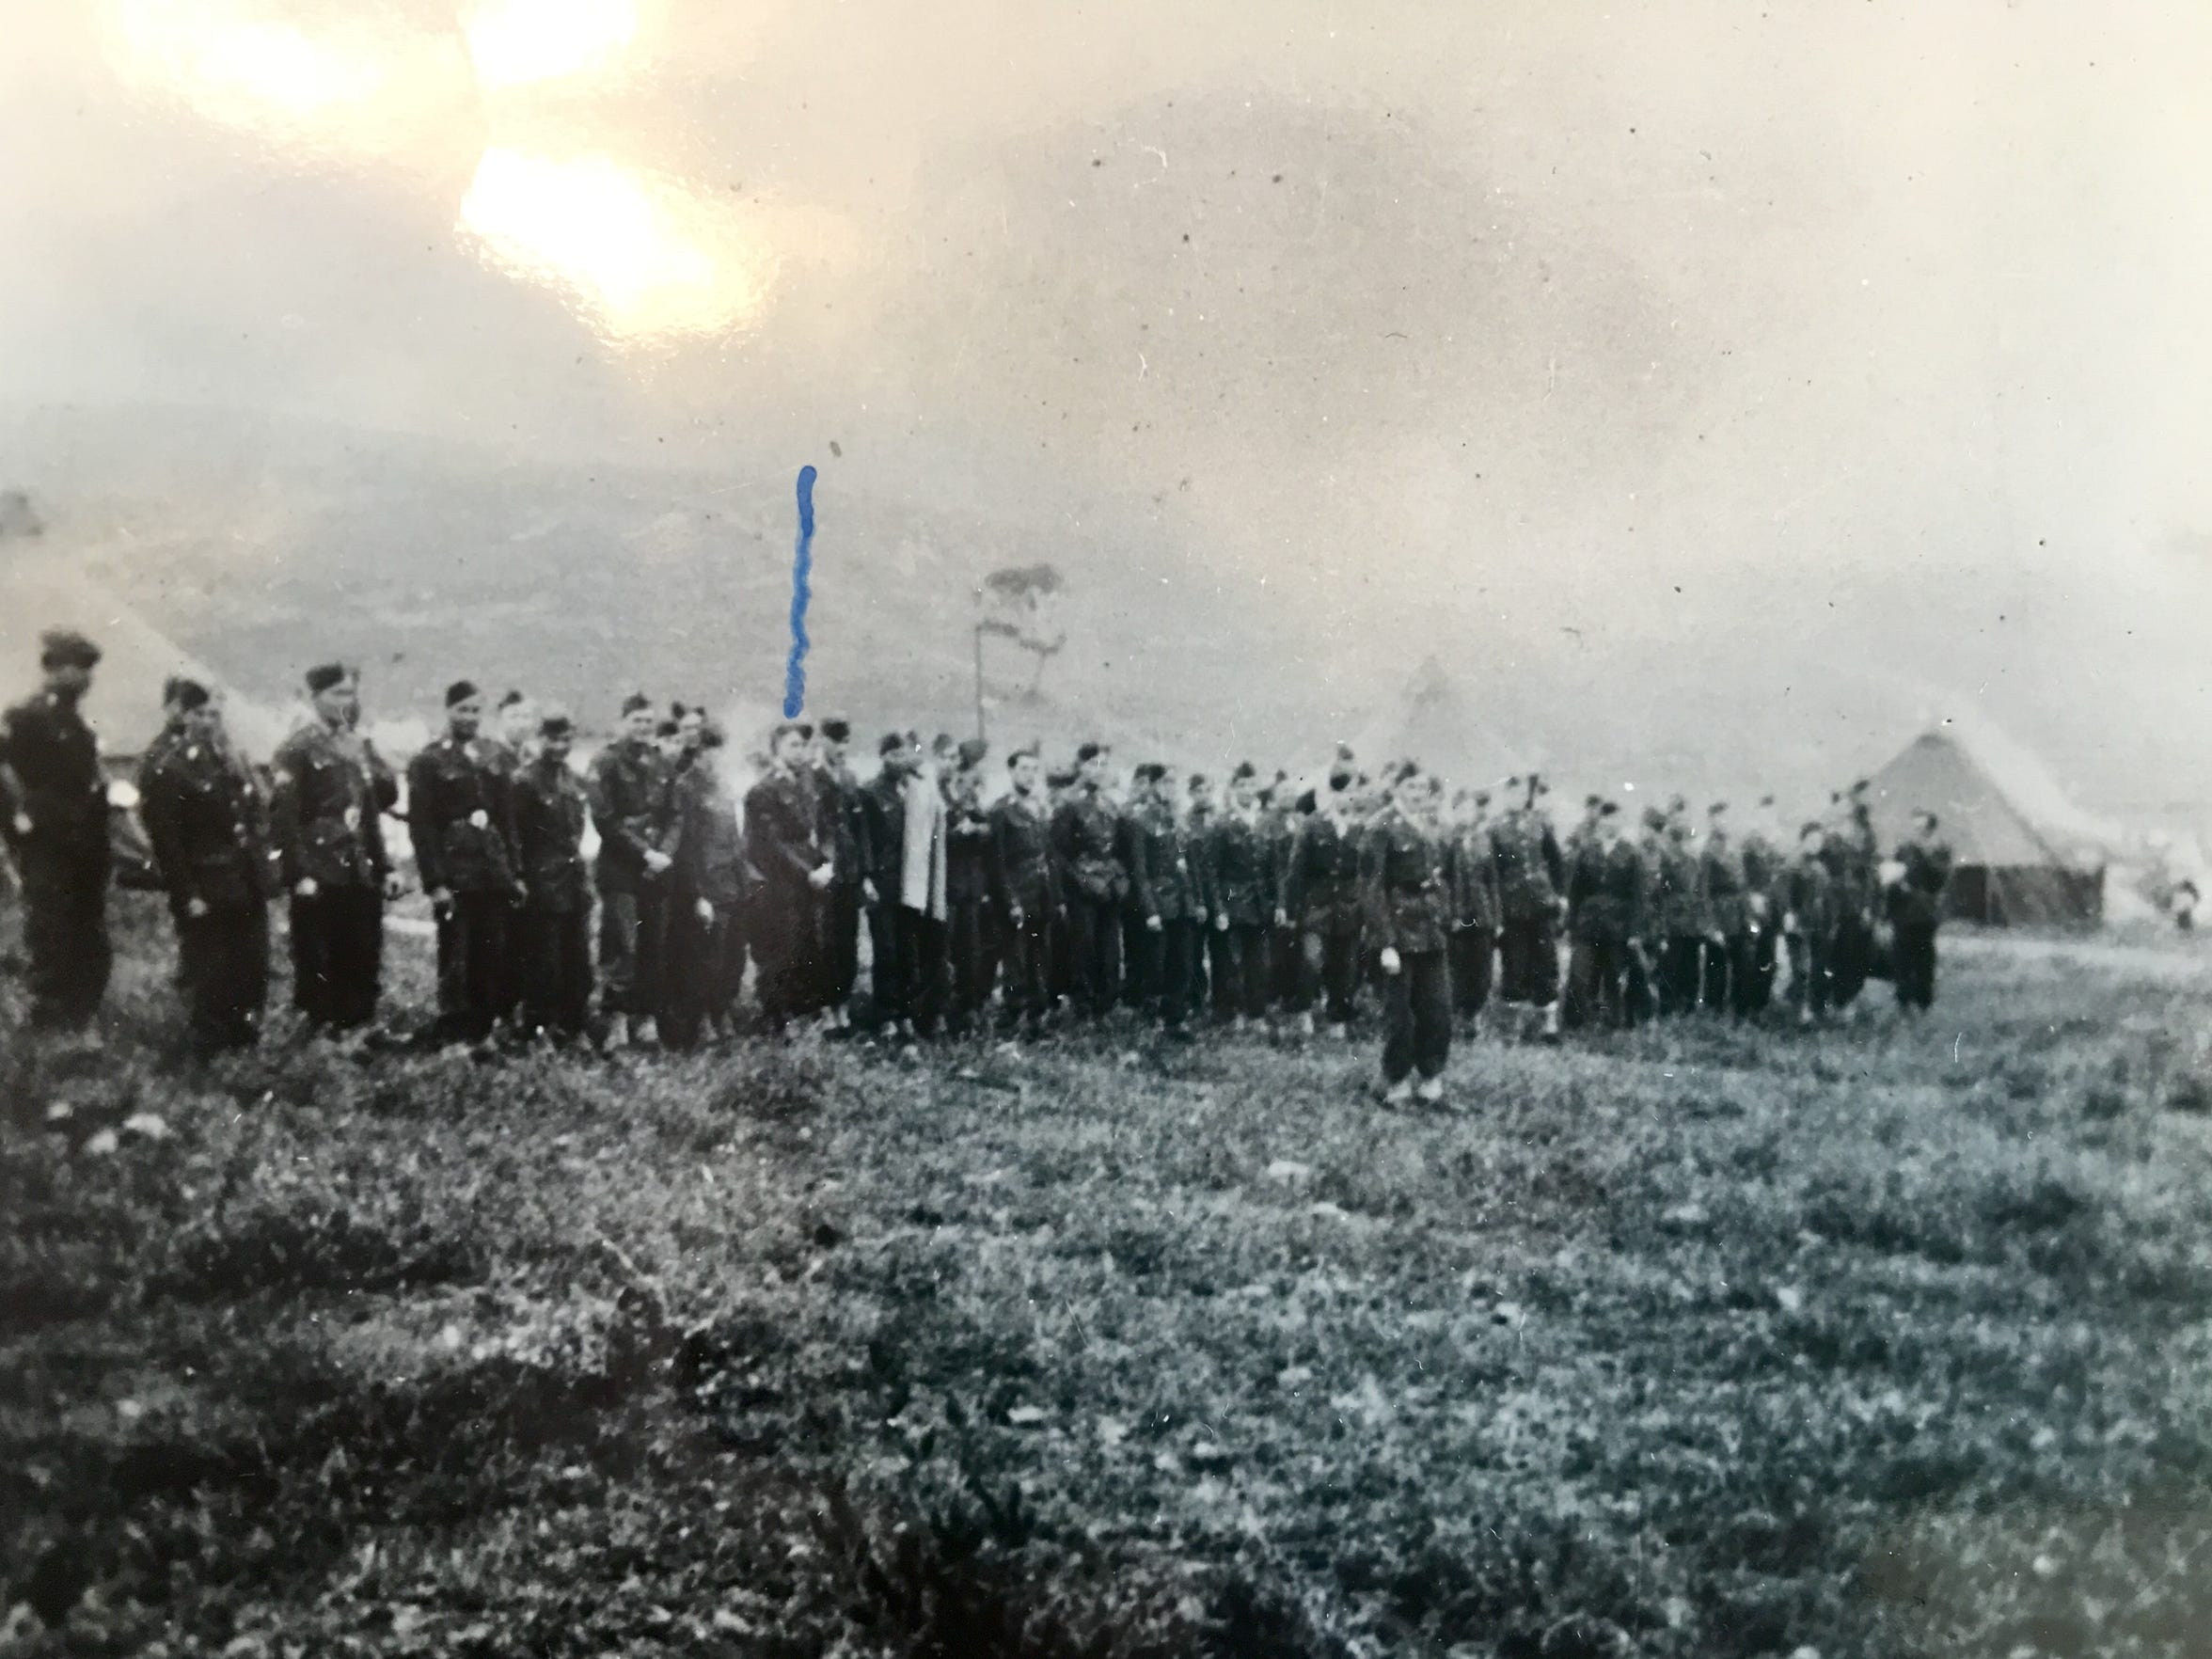 """William """"Babe"""" Brinkley is pictured below the blue arrow in this photo of the new U.S. Army Rangers training in Scotland."""